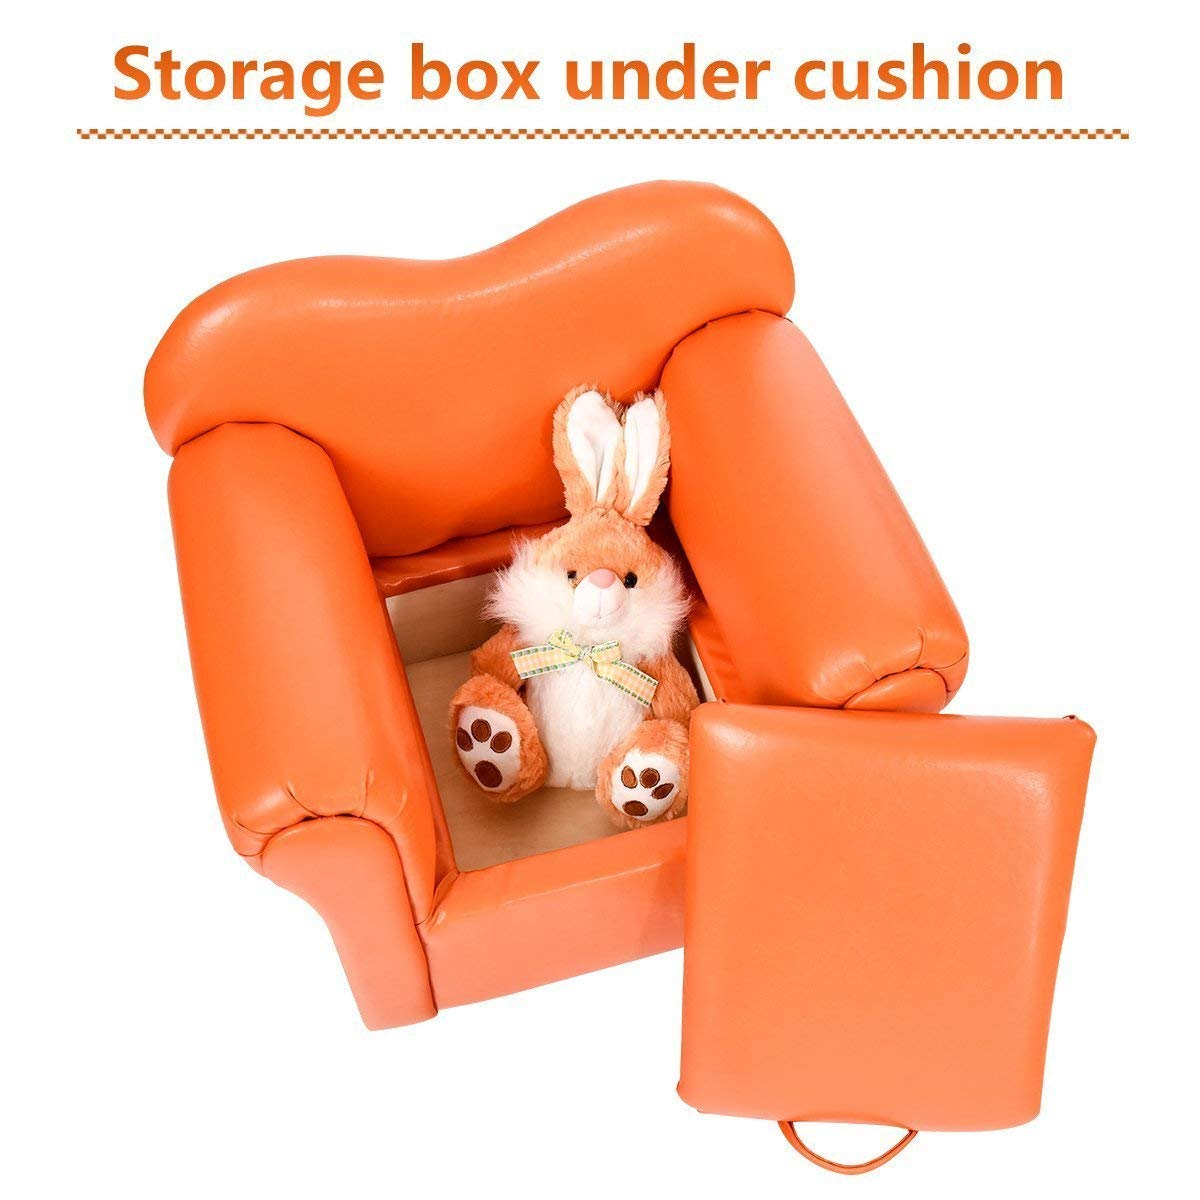 Costzon Kids Sofa, PU Leather Upholstered Armrest, Sturdy Wood Construction, Toddler Chair (Orange Sofa with Storage Box) by Costzon (Image #2)